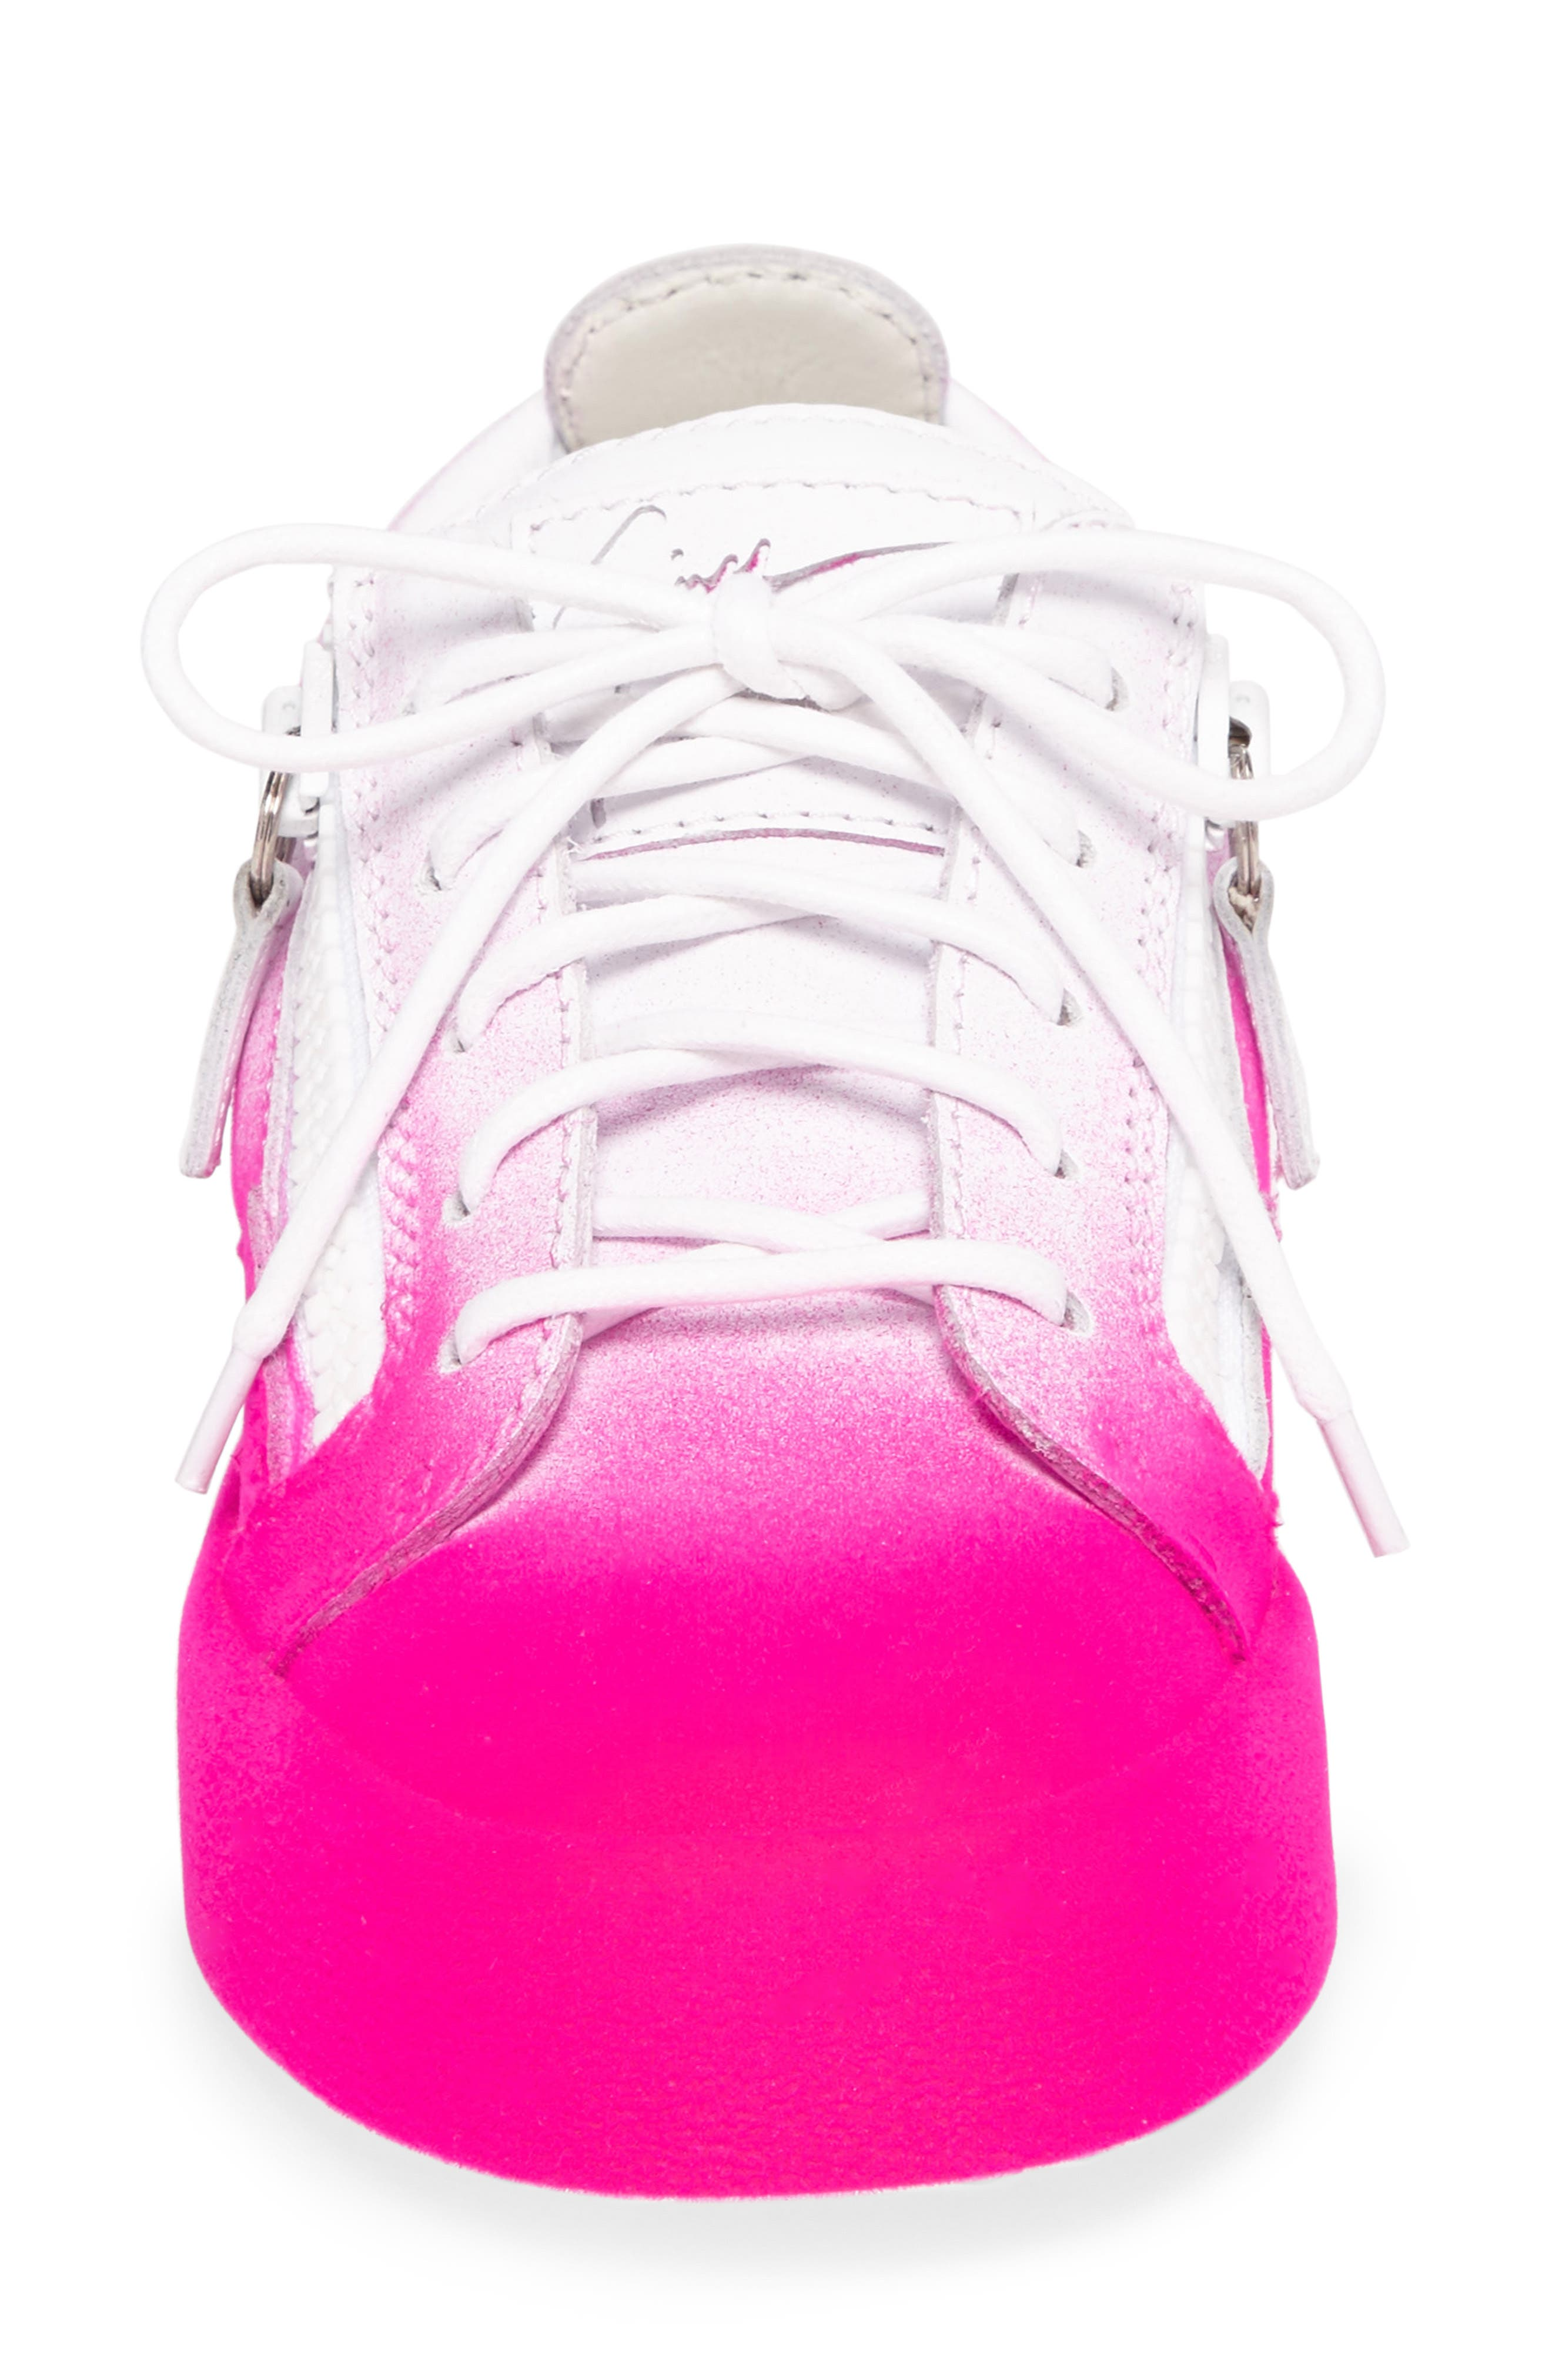 May London Low Top Sneaker,                             Alternate thumbnail 4, color,                             White/ Pink